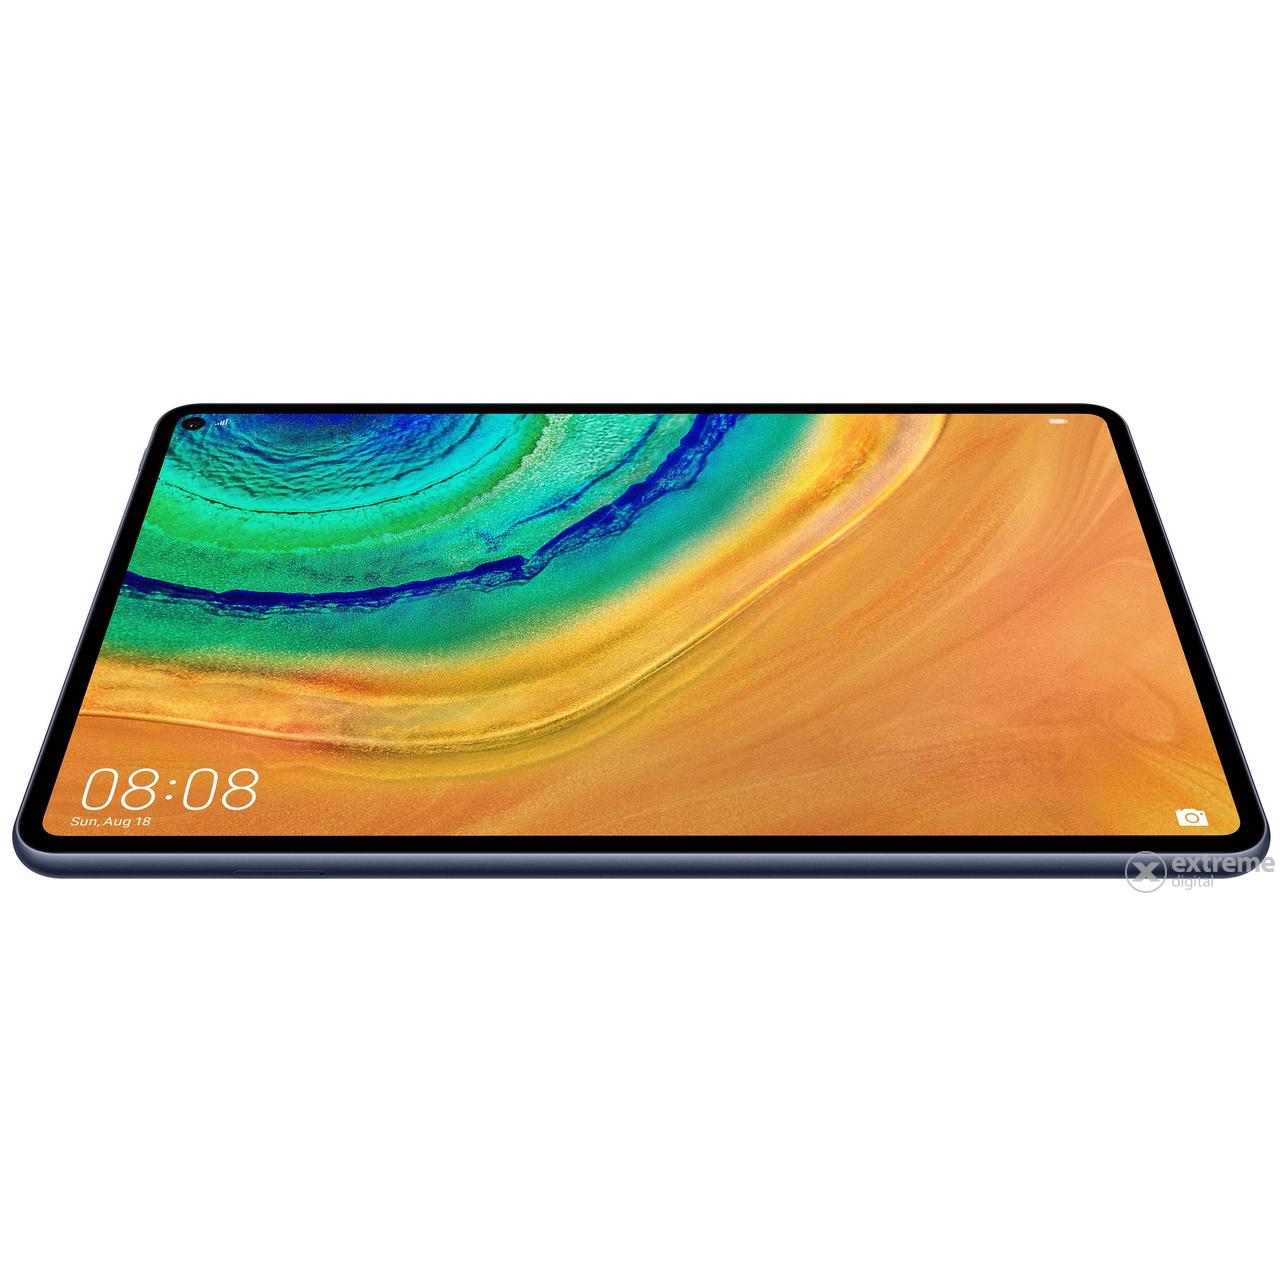 Huawei MatePad Pro 10.8 Wi-Fi + LTE 6/128GB таблет, Grey (Android)